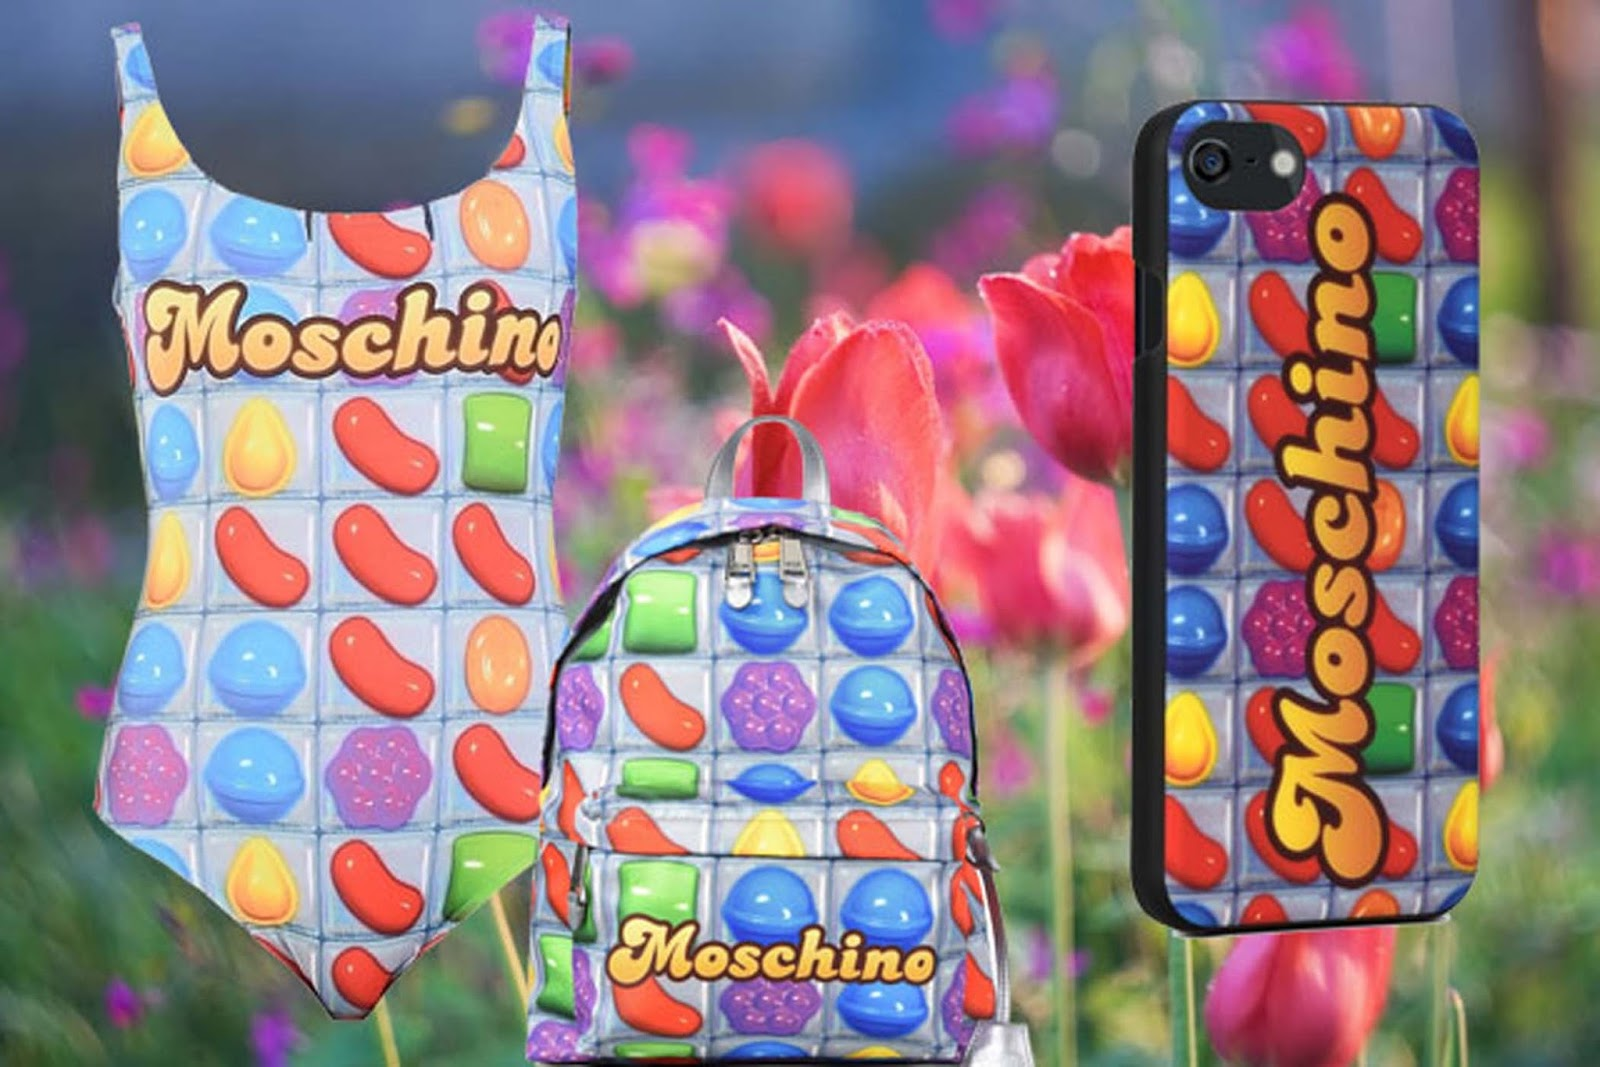 Novità moda aprile 2017 - Moschino & Candy Crush - Eniwhere Fashion